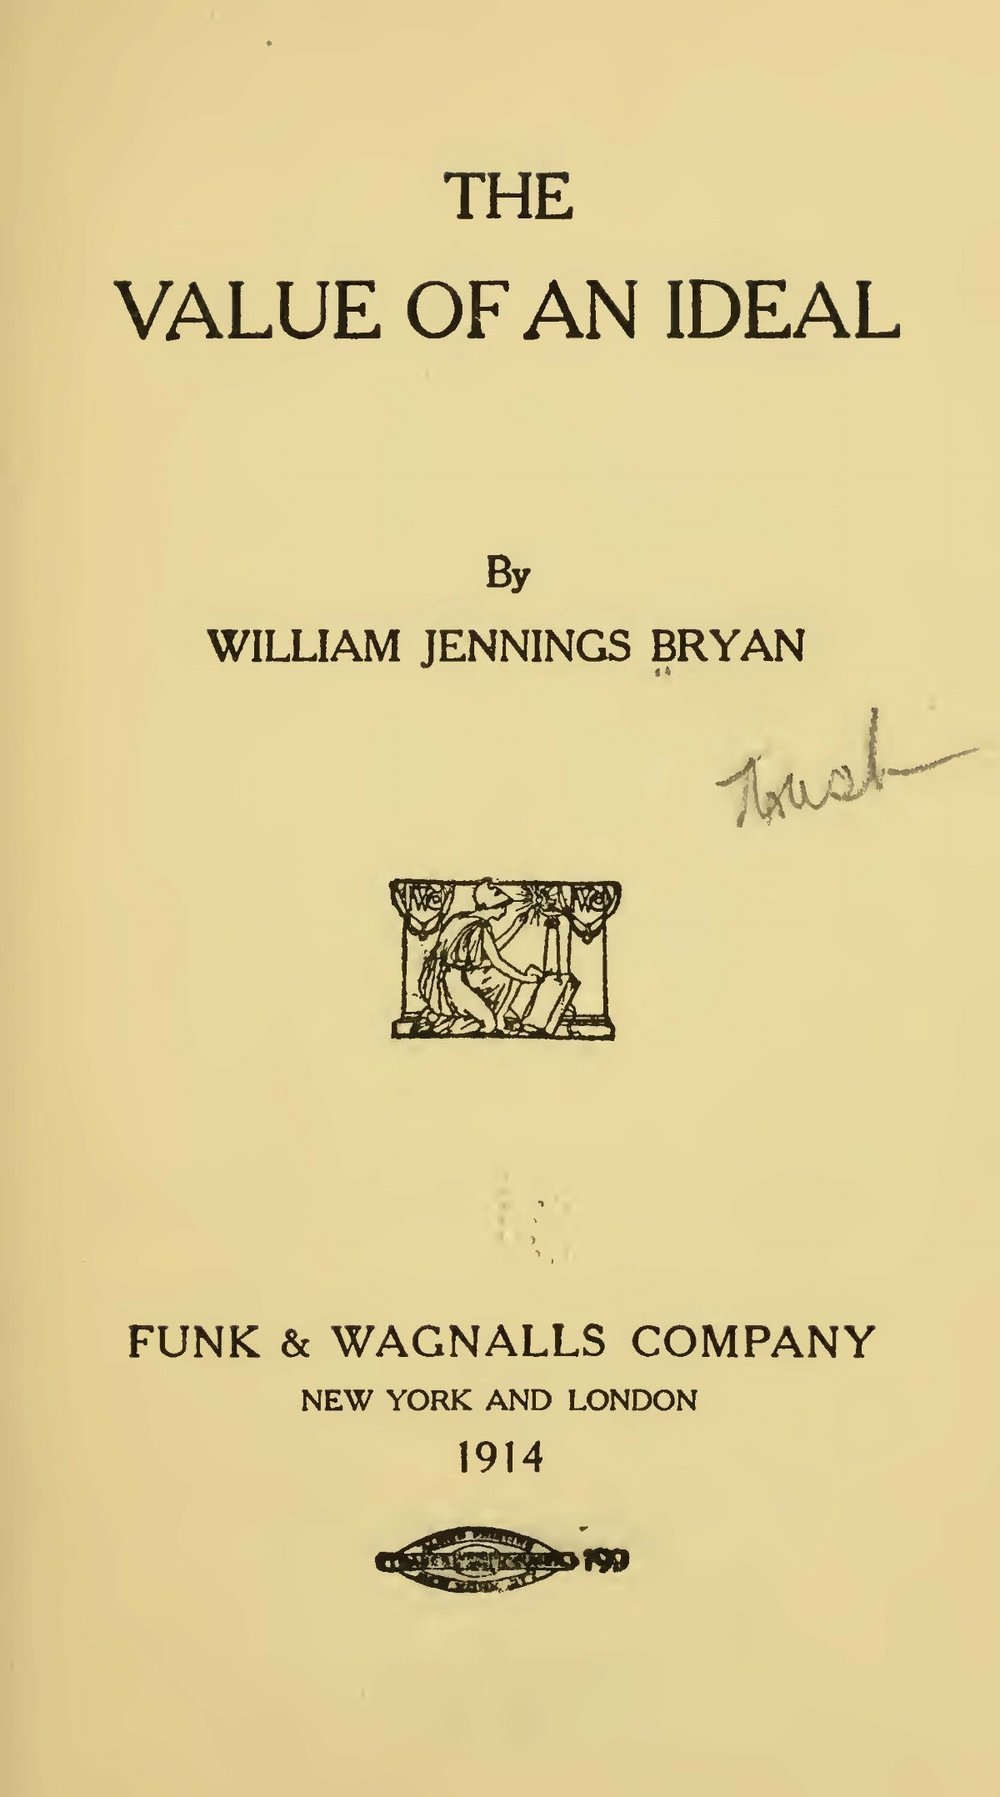 Bryan, Sr., William Jennings, The Value of an Ideal Title Page.jpg